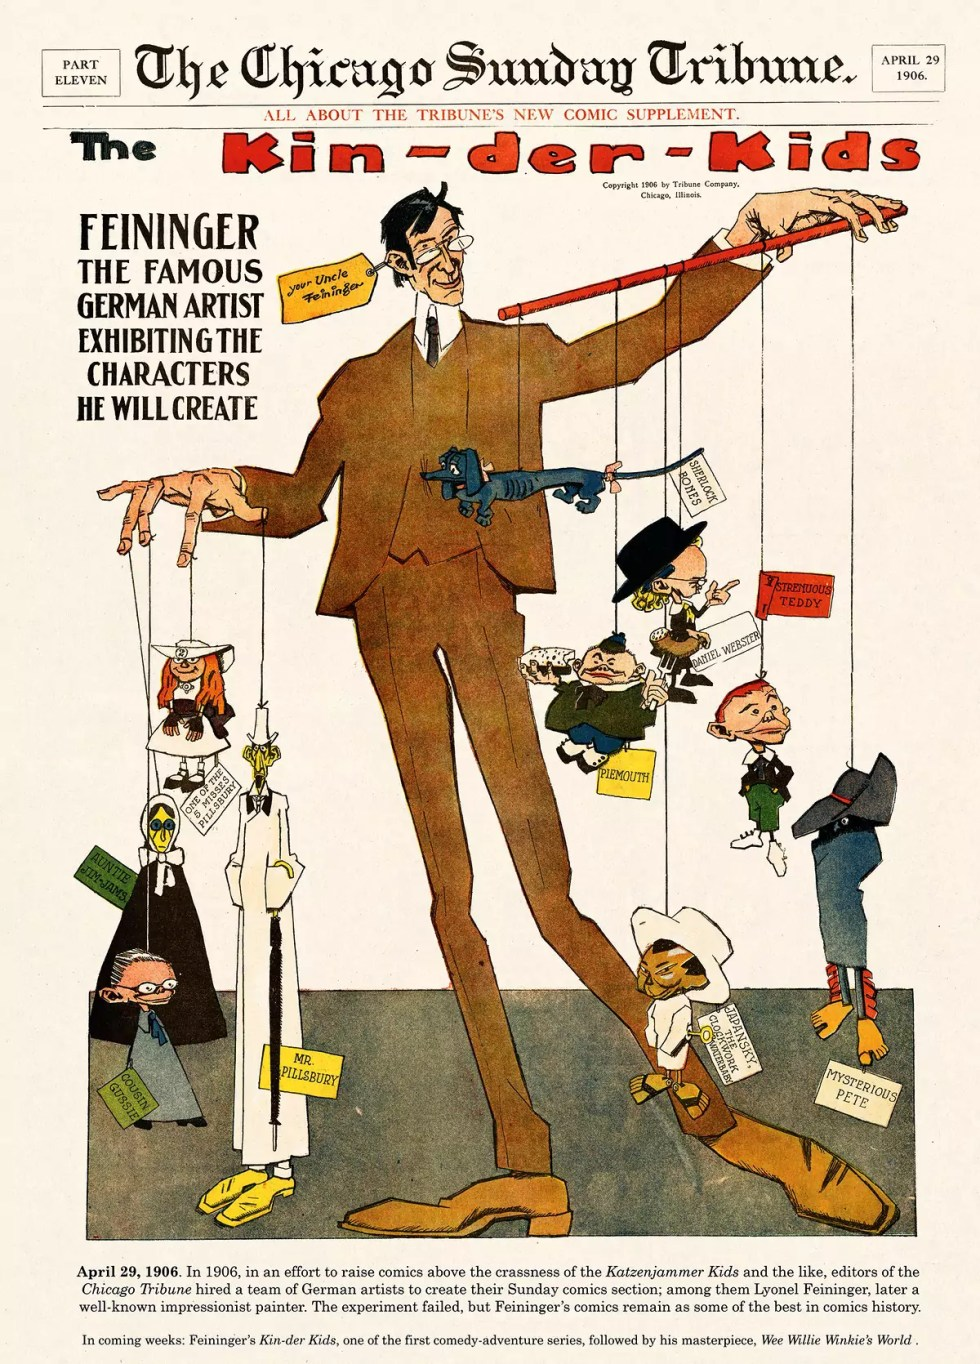 Chicago Sunday Tribune cover illustration depicting Lyonel Feininger as a puppeteer with his Kin-Der Kids creations attached by strings.